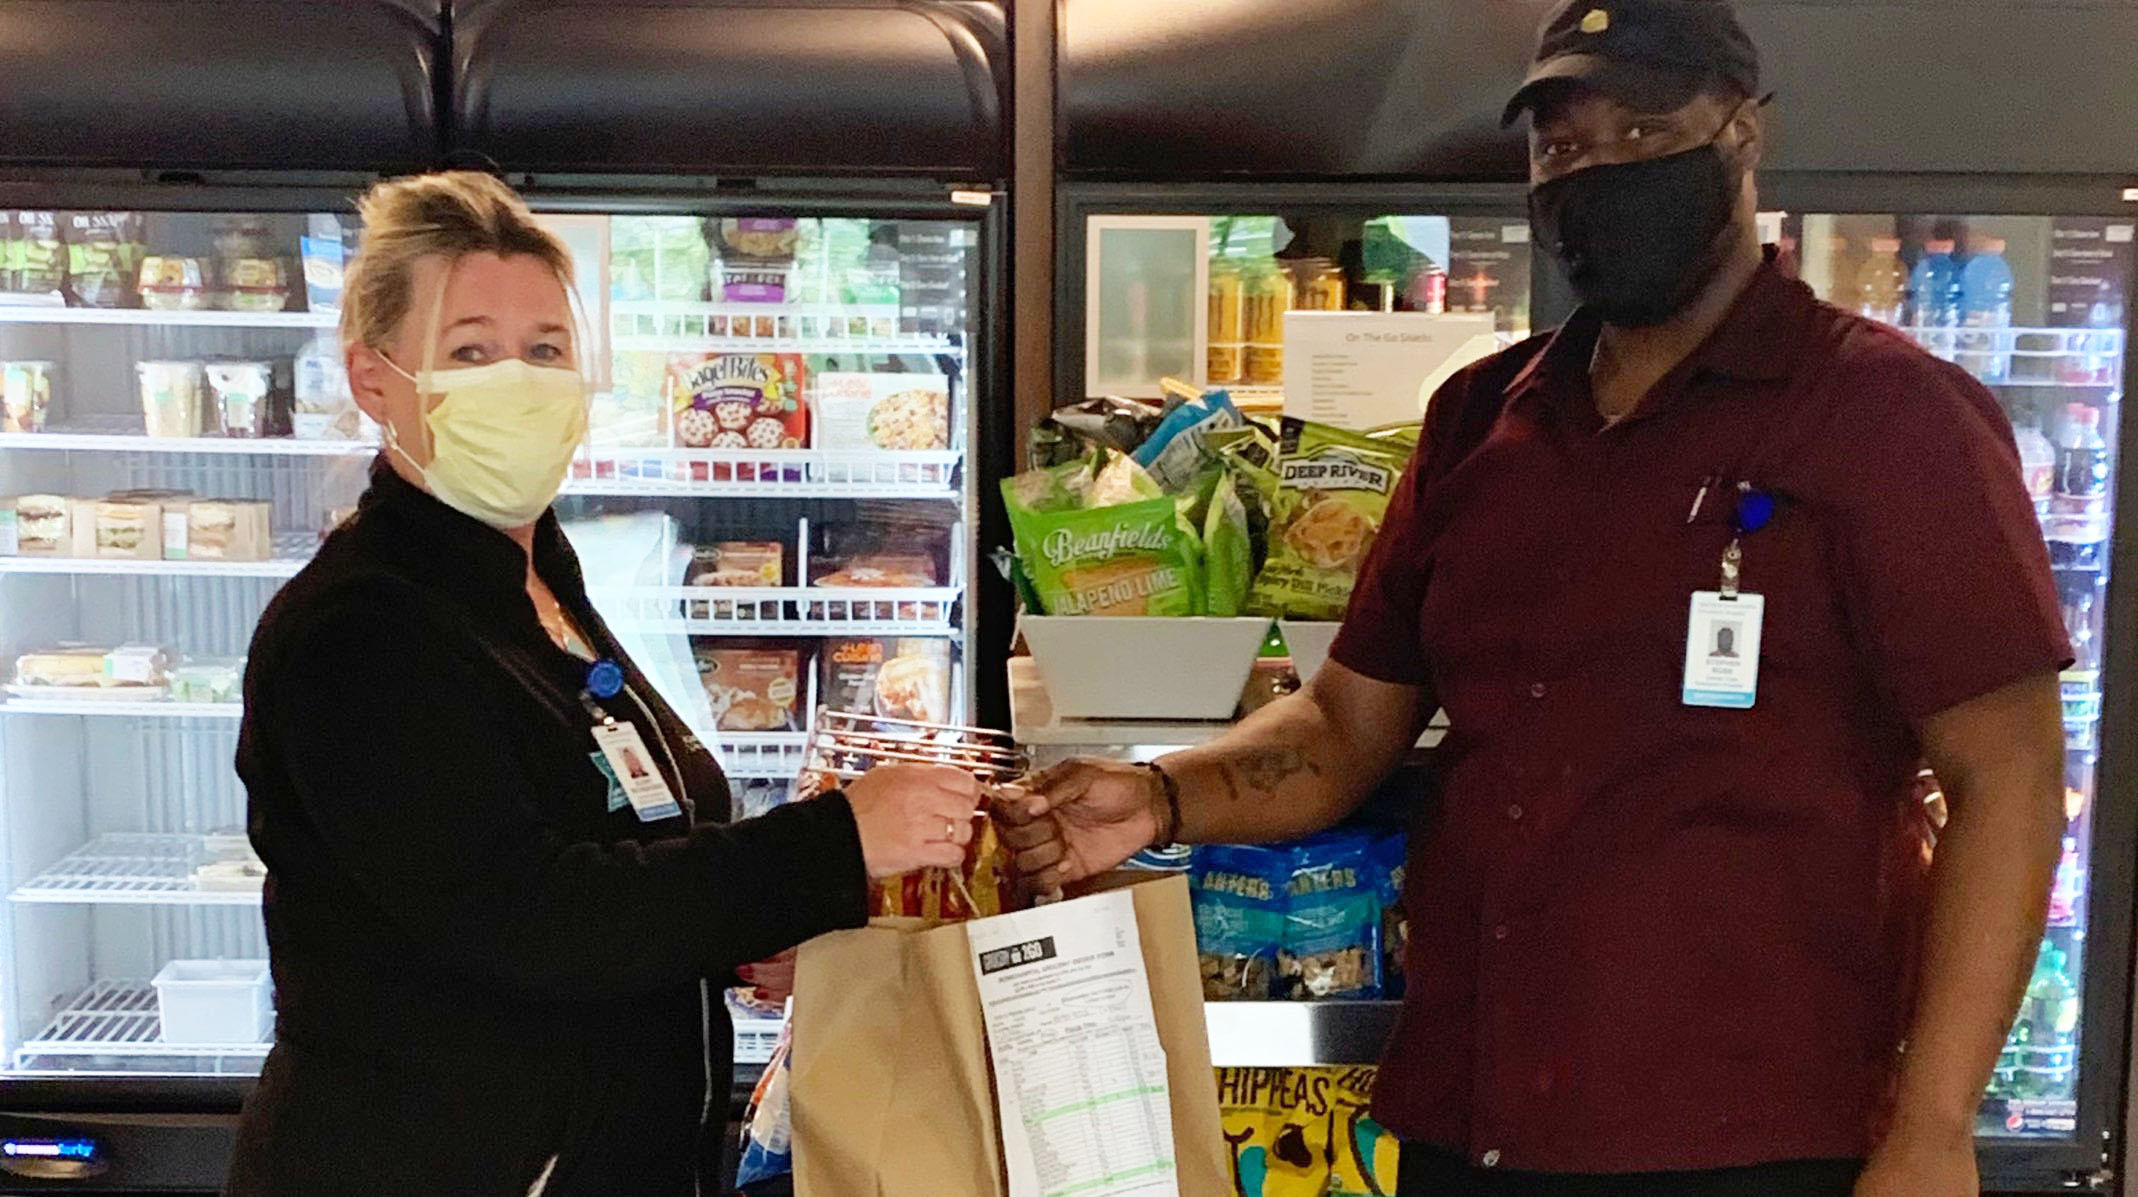 Greenwich Hospital employee obtains groceries during COVID-19